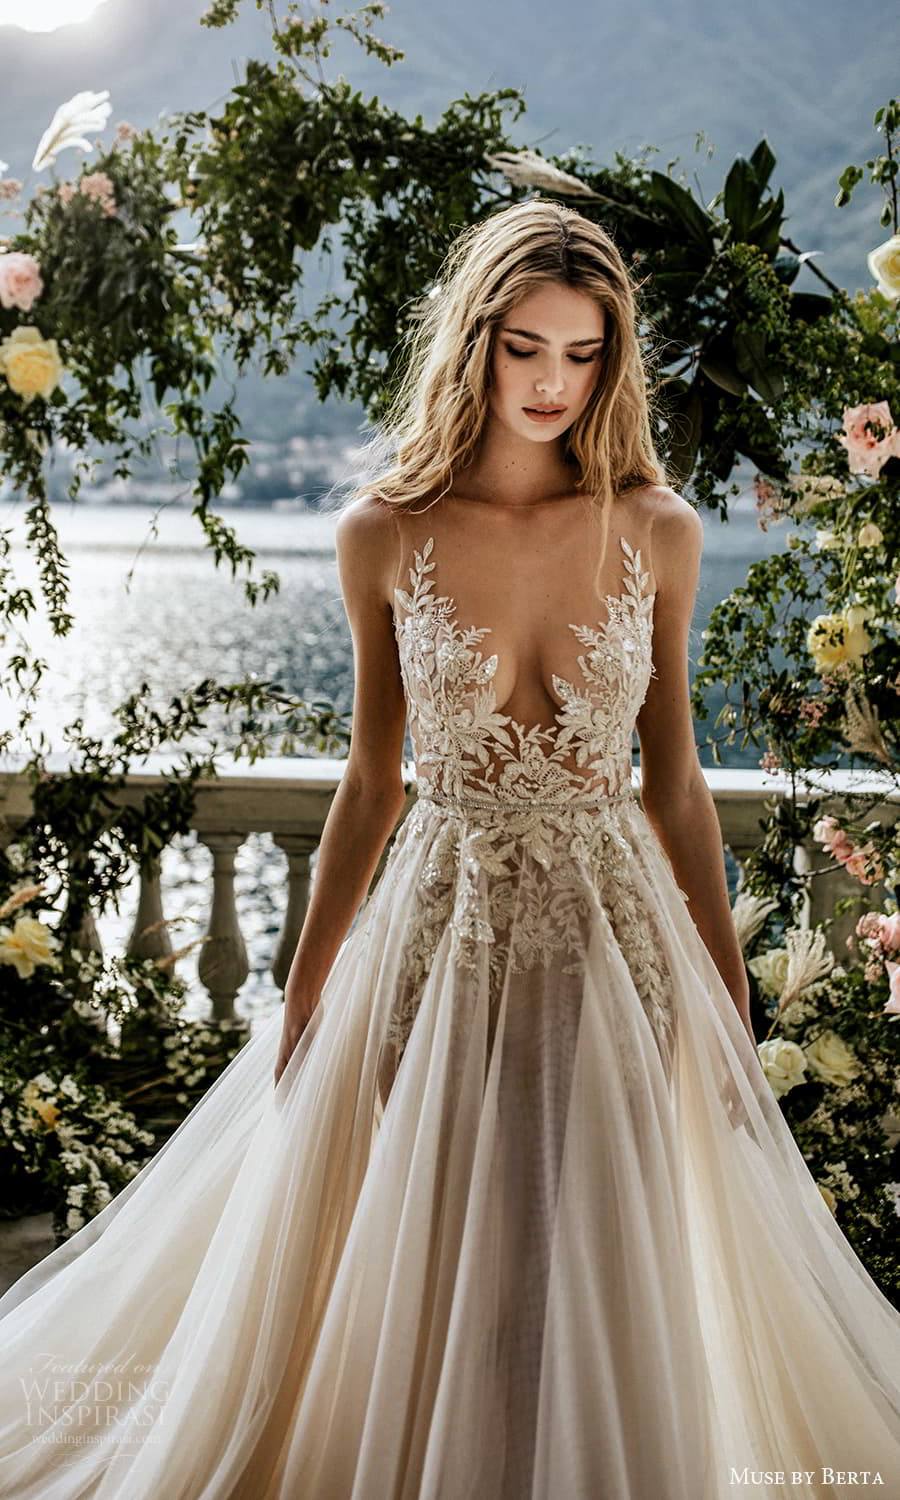 muse by berta spring 2022 bridal sleeveless straps plunging v neckline embellished bodice a line ball gown wedding dress chapel train (10) zv